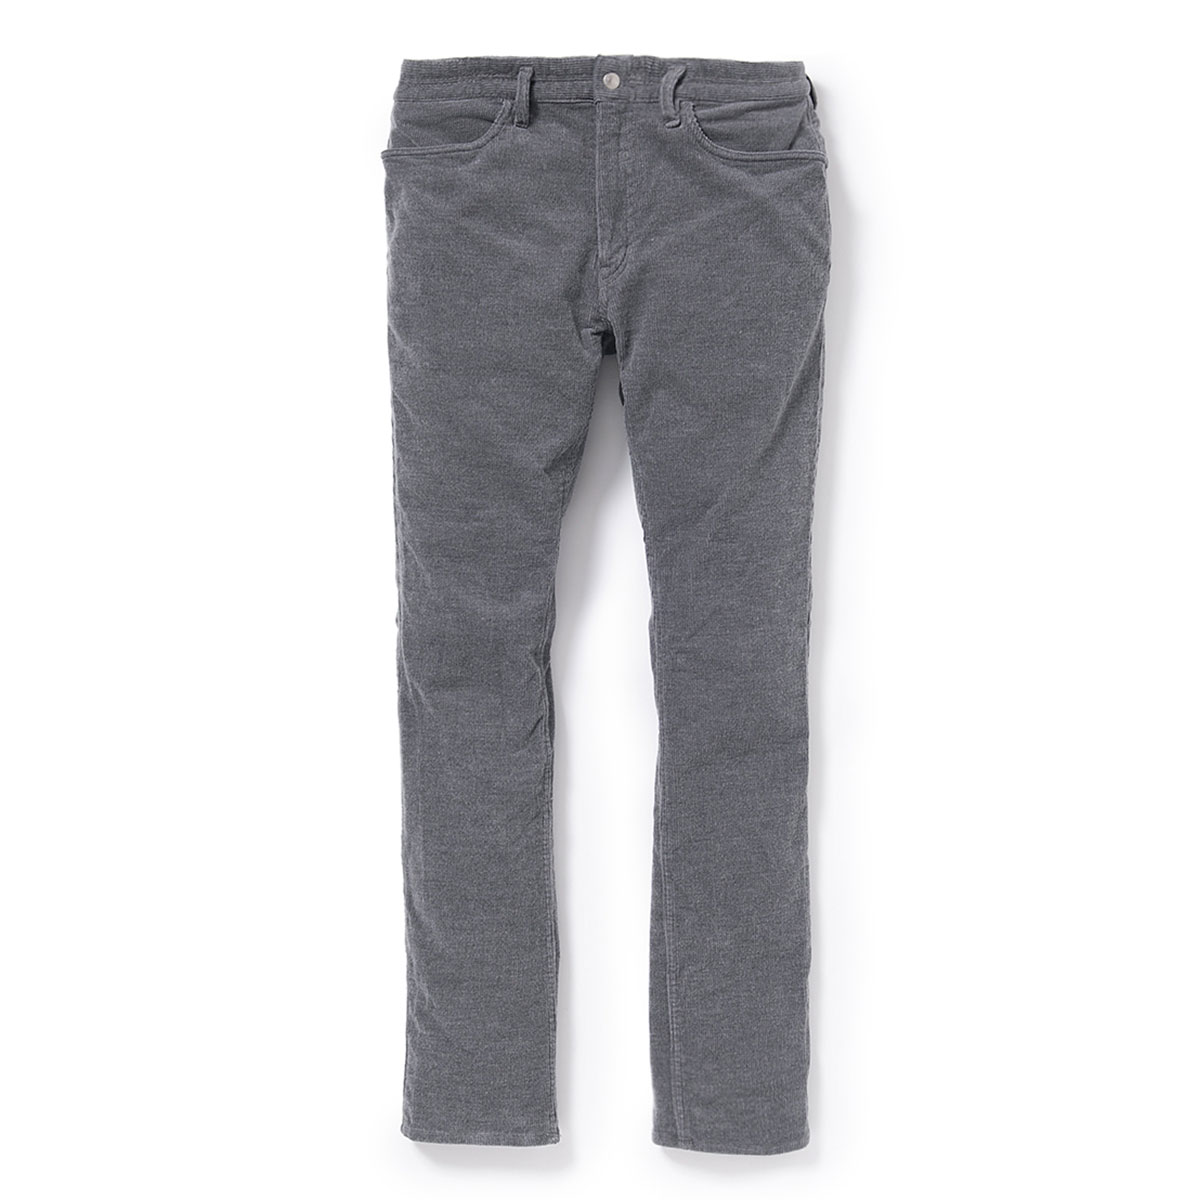 nonnative / DWELLER 4P JEANS TAPERED FIT C/P CORD STRETCH -H.GRAY